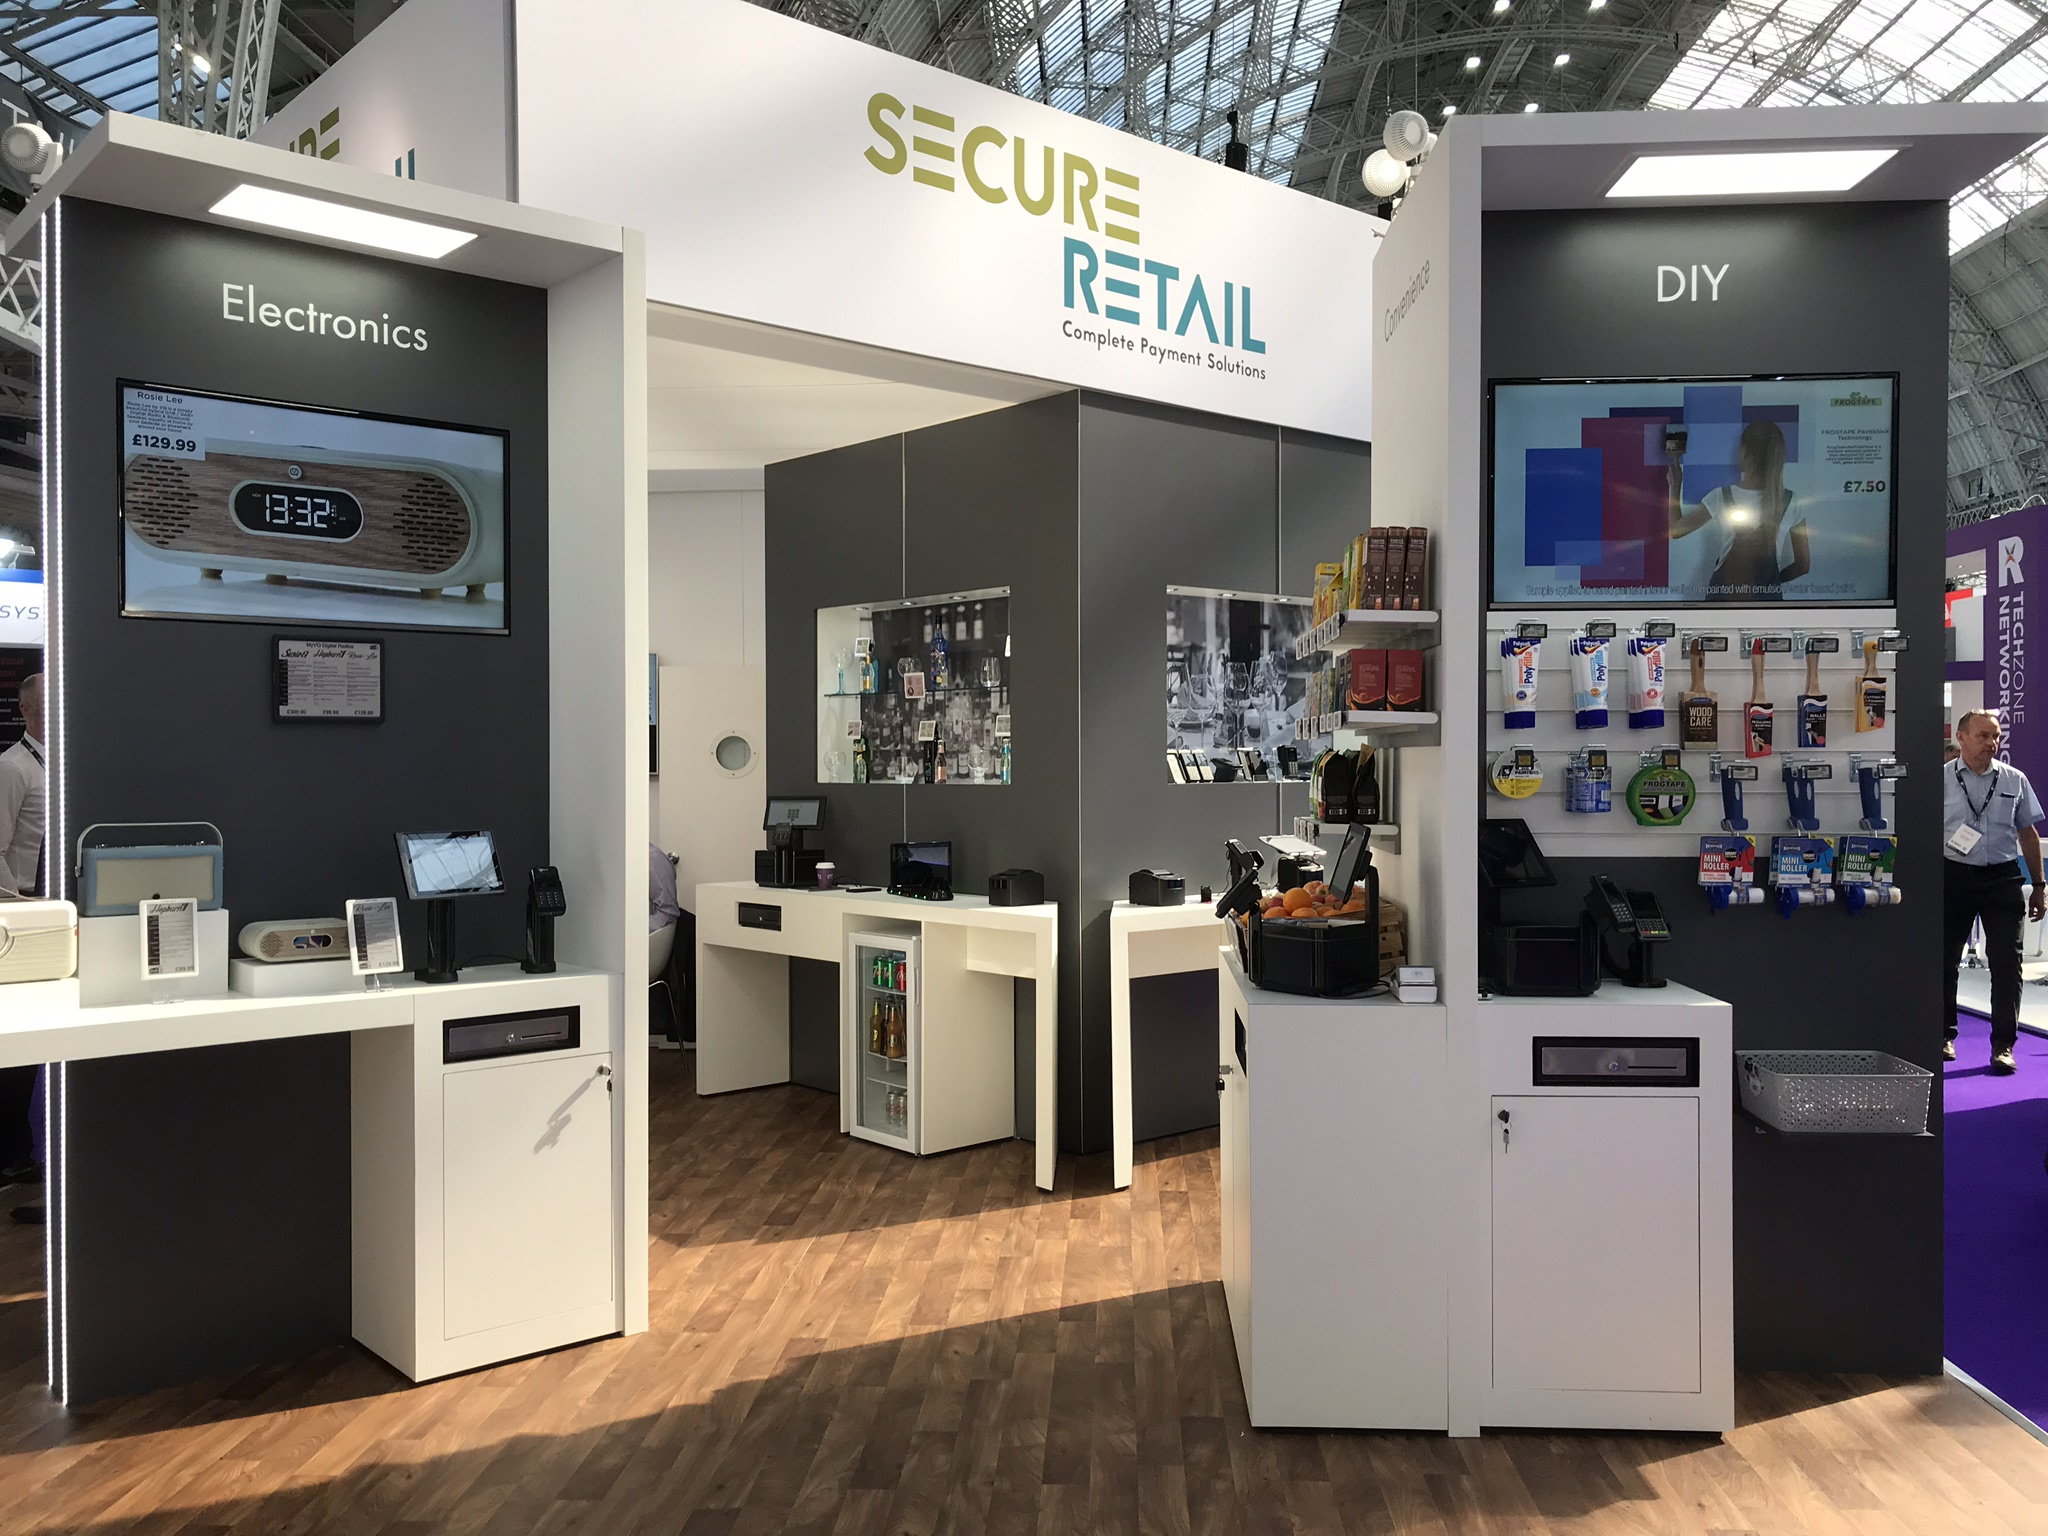 Demonstrations of payment solutions and ESLs were on Secure Retail's stand.